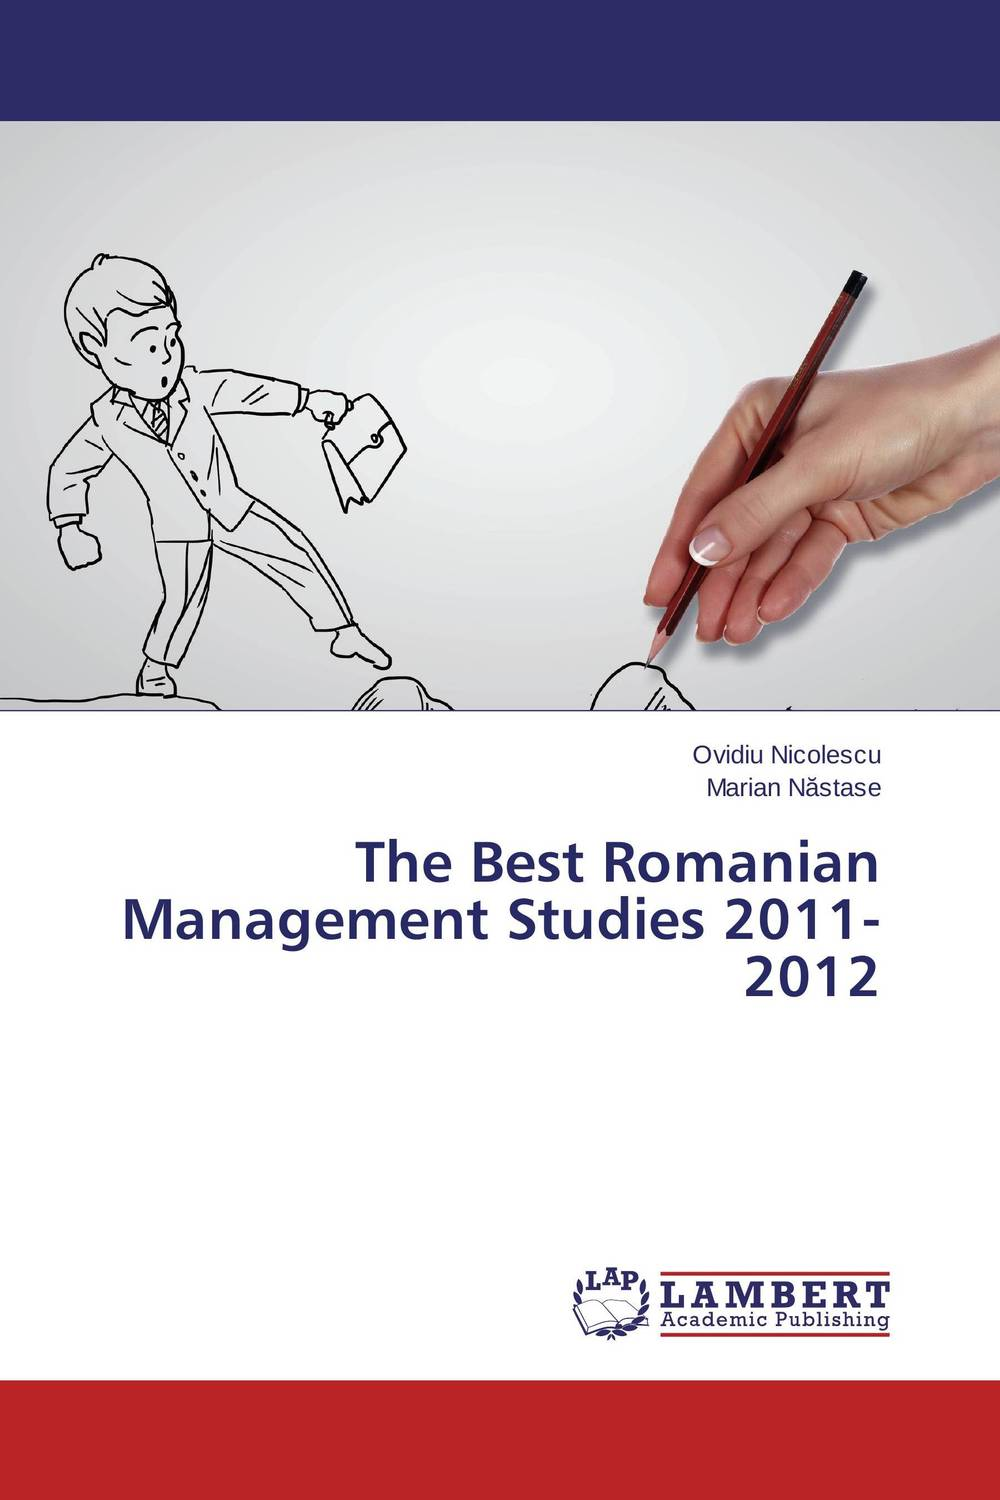 The Best Romanian Management Studies 2011-2012 warren greshes the best damn management book ever 9 keys to creating self motivated high achievers